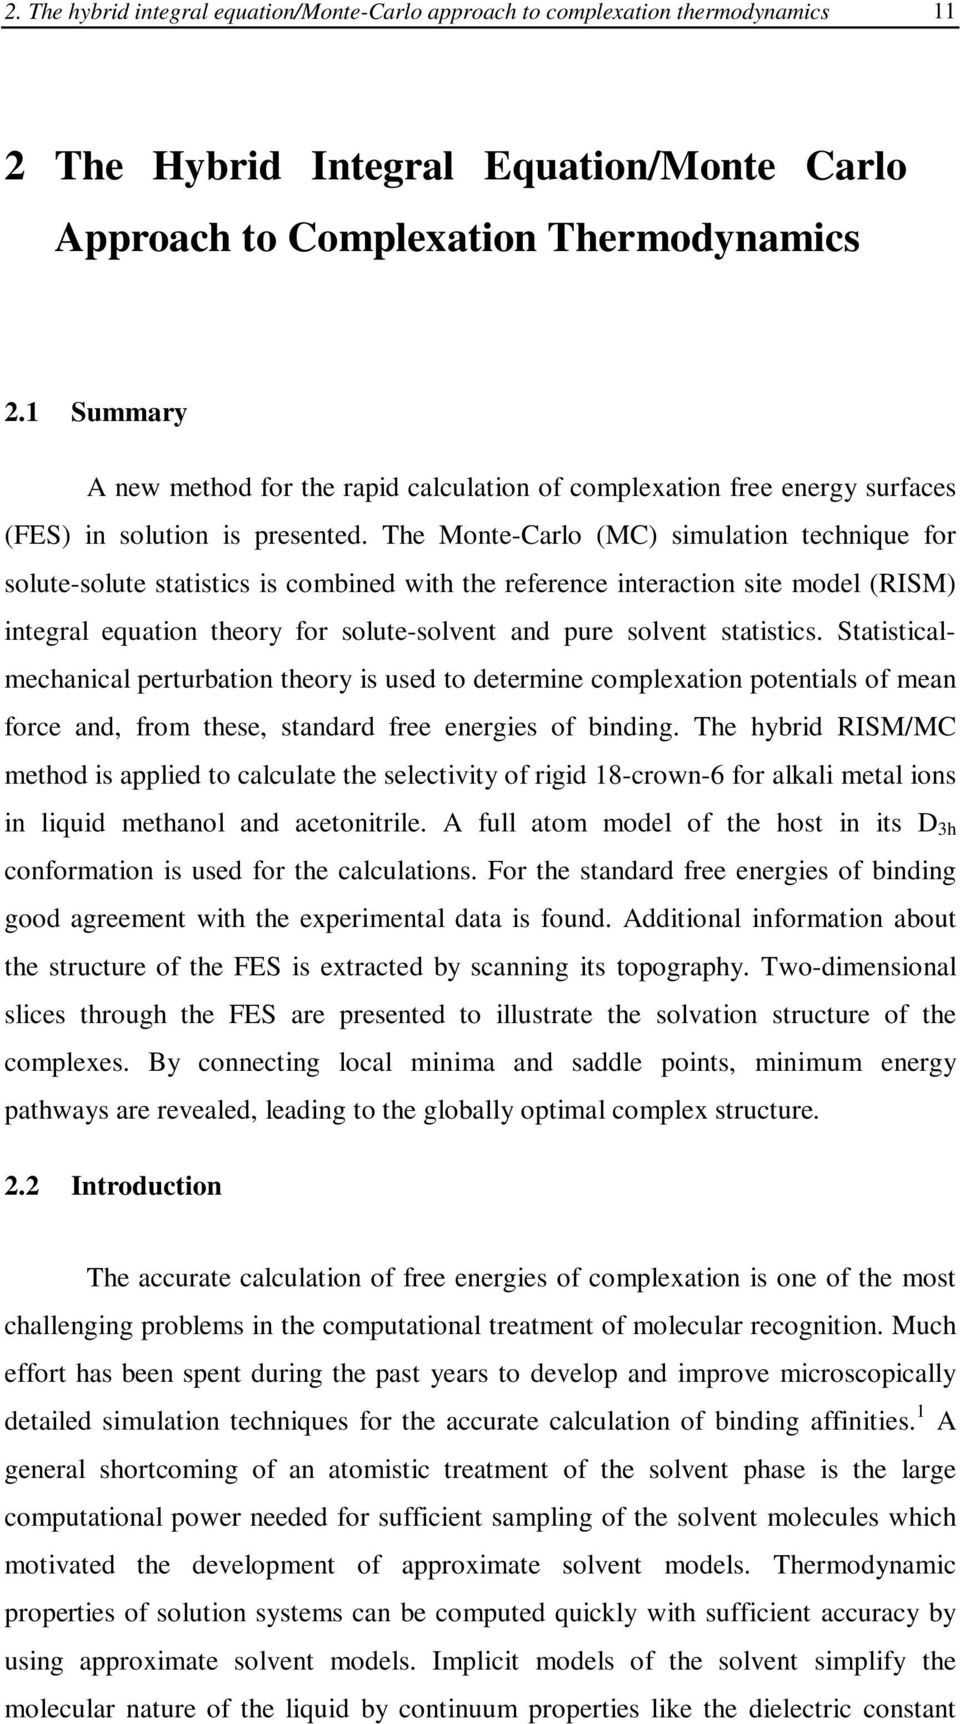 The Monte-Carlo (MC) simulation technique for solute-solute statistics is combined with the reference interaction site model (RISM) integral equation theory for solute-solvent and pure solvent